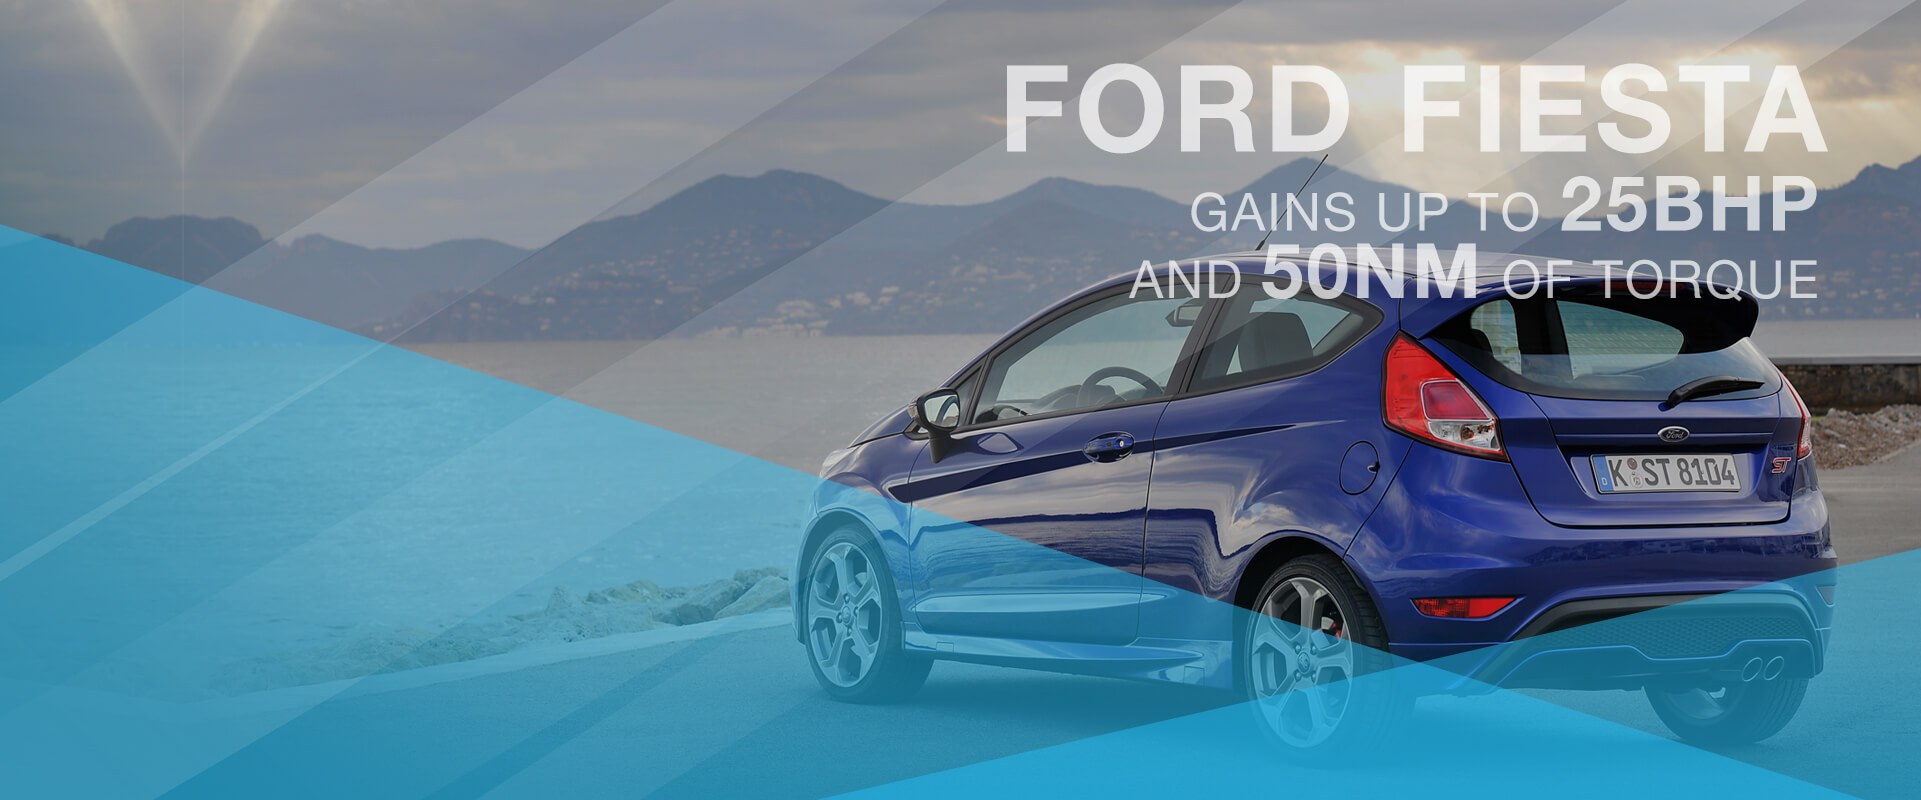 Ford Fiesta gains up to 25BHP and 50NM of torque